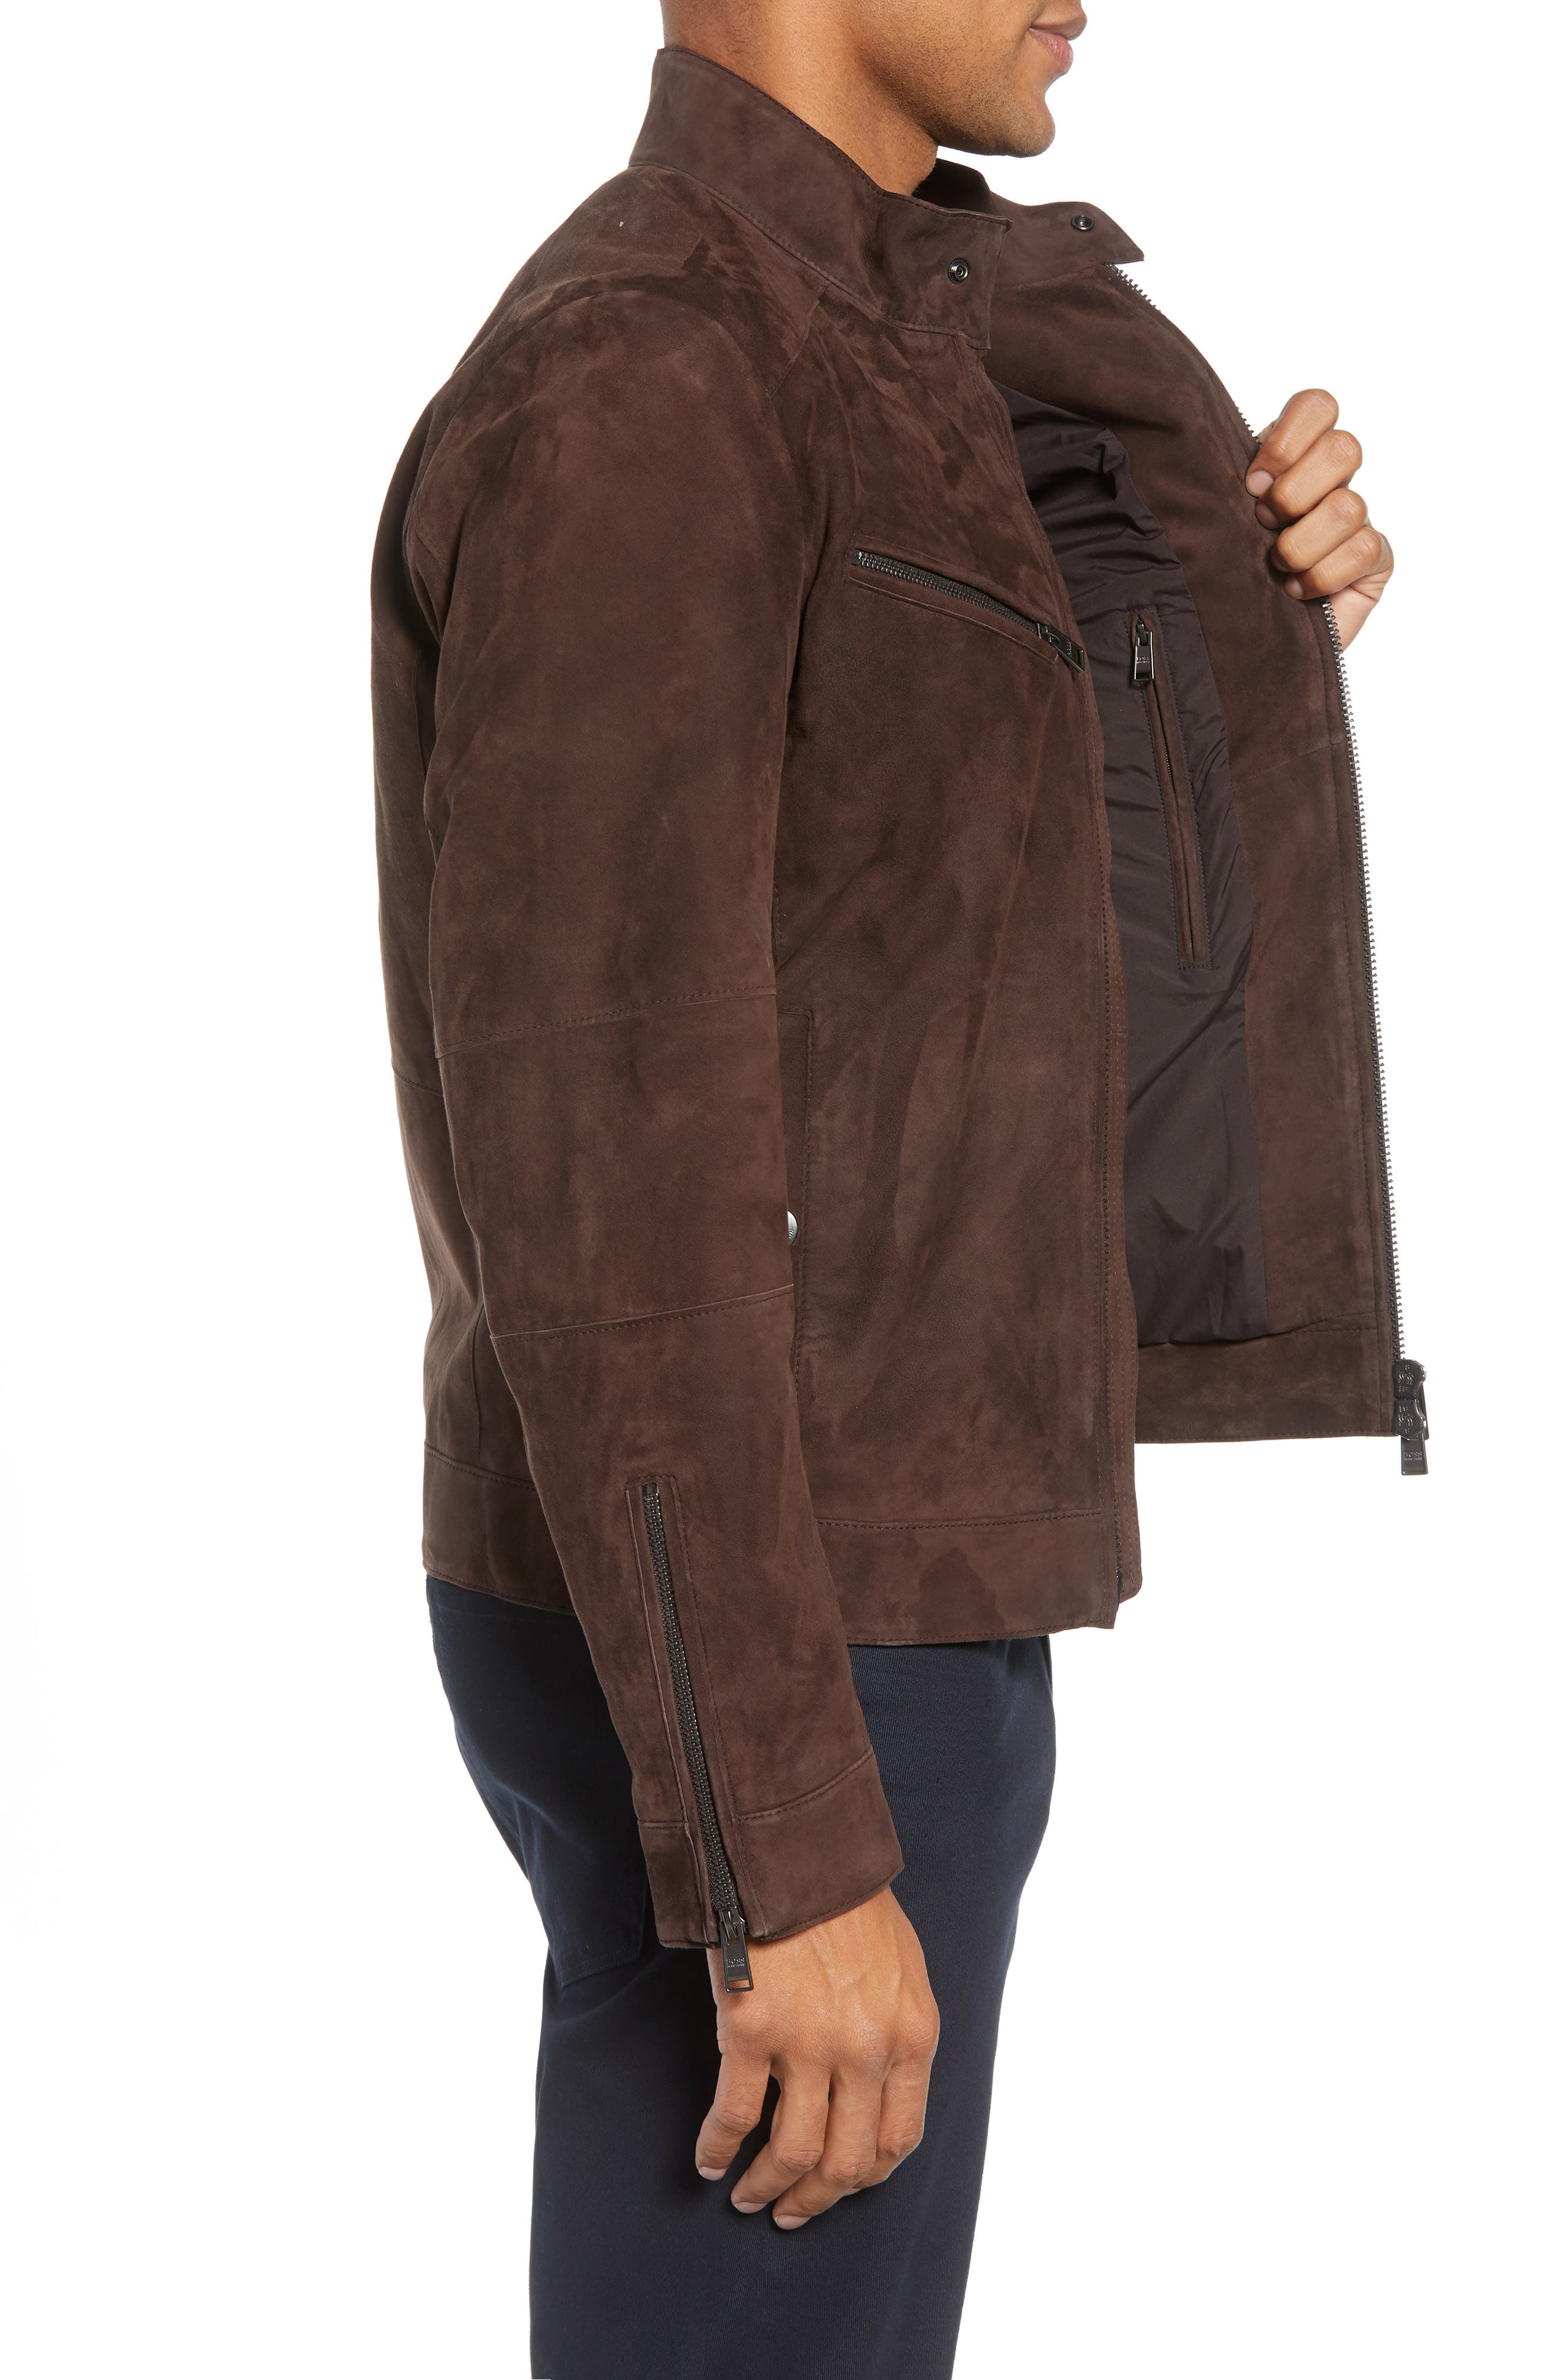 T-Nalok Suede Jacket,                             Alternate thumbnail 3, color,                             202